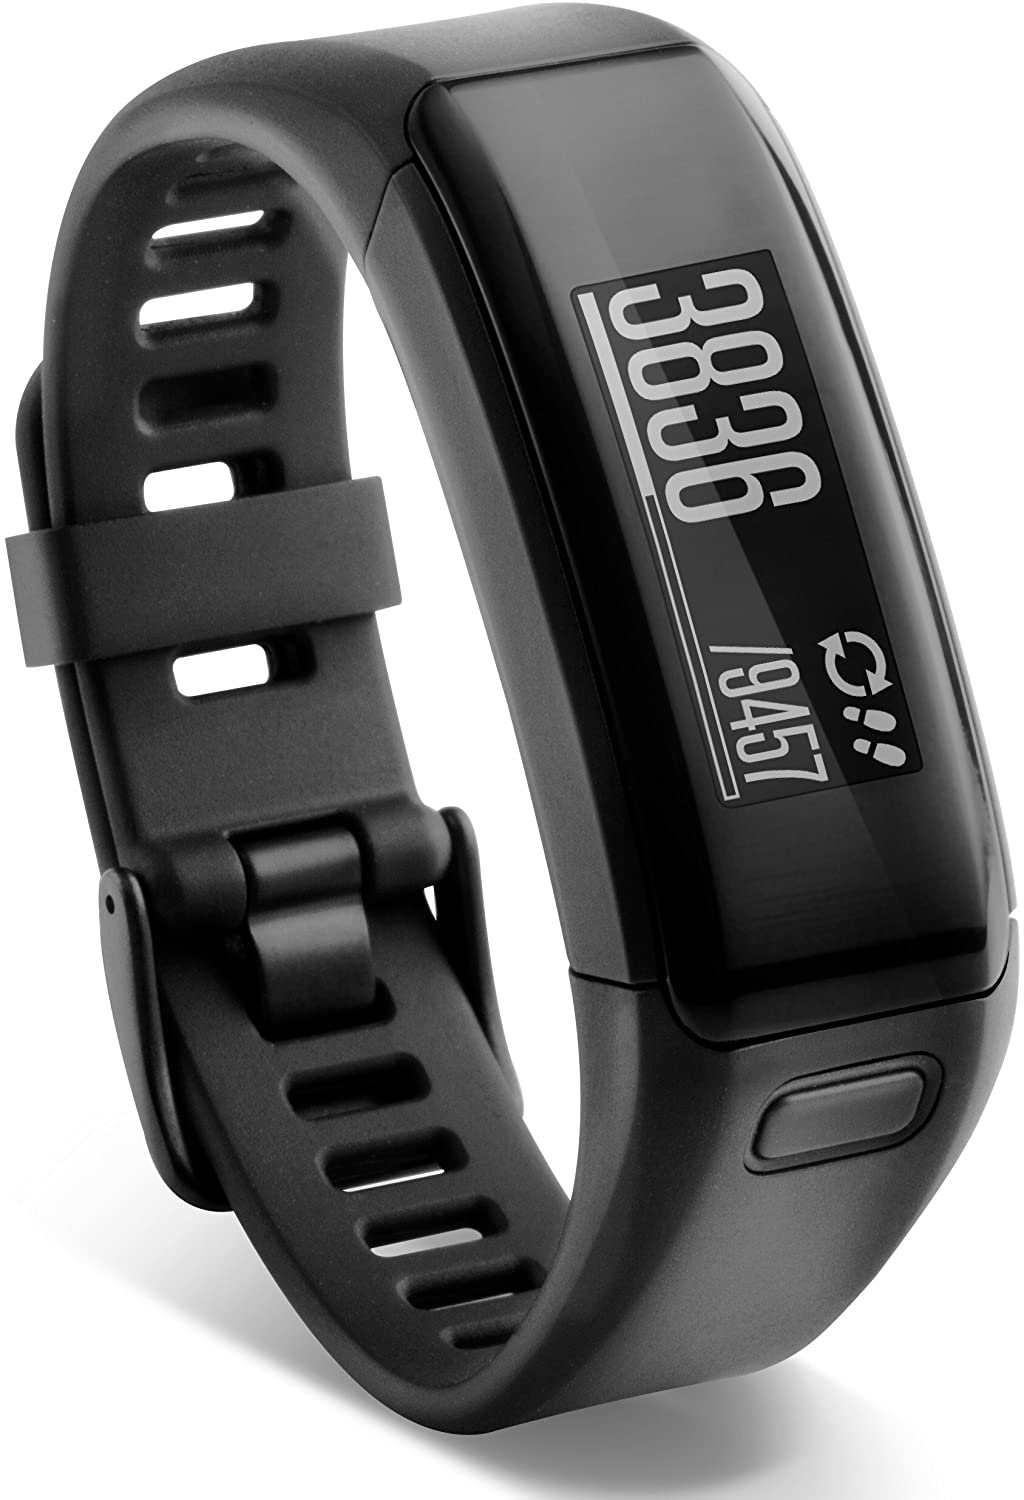 Garmin Vivosmart HR Activity Tracker Regular Fit - Black